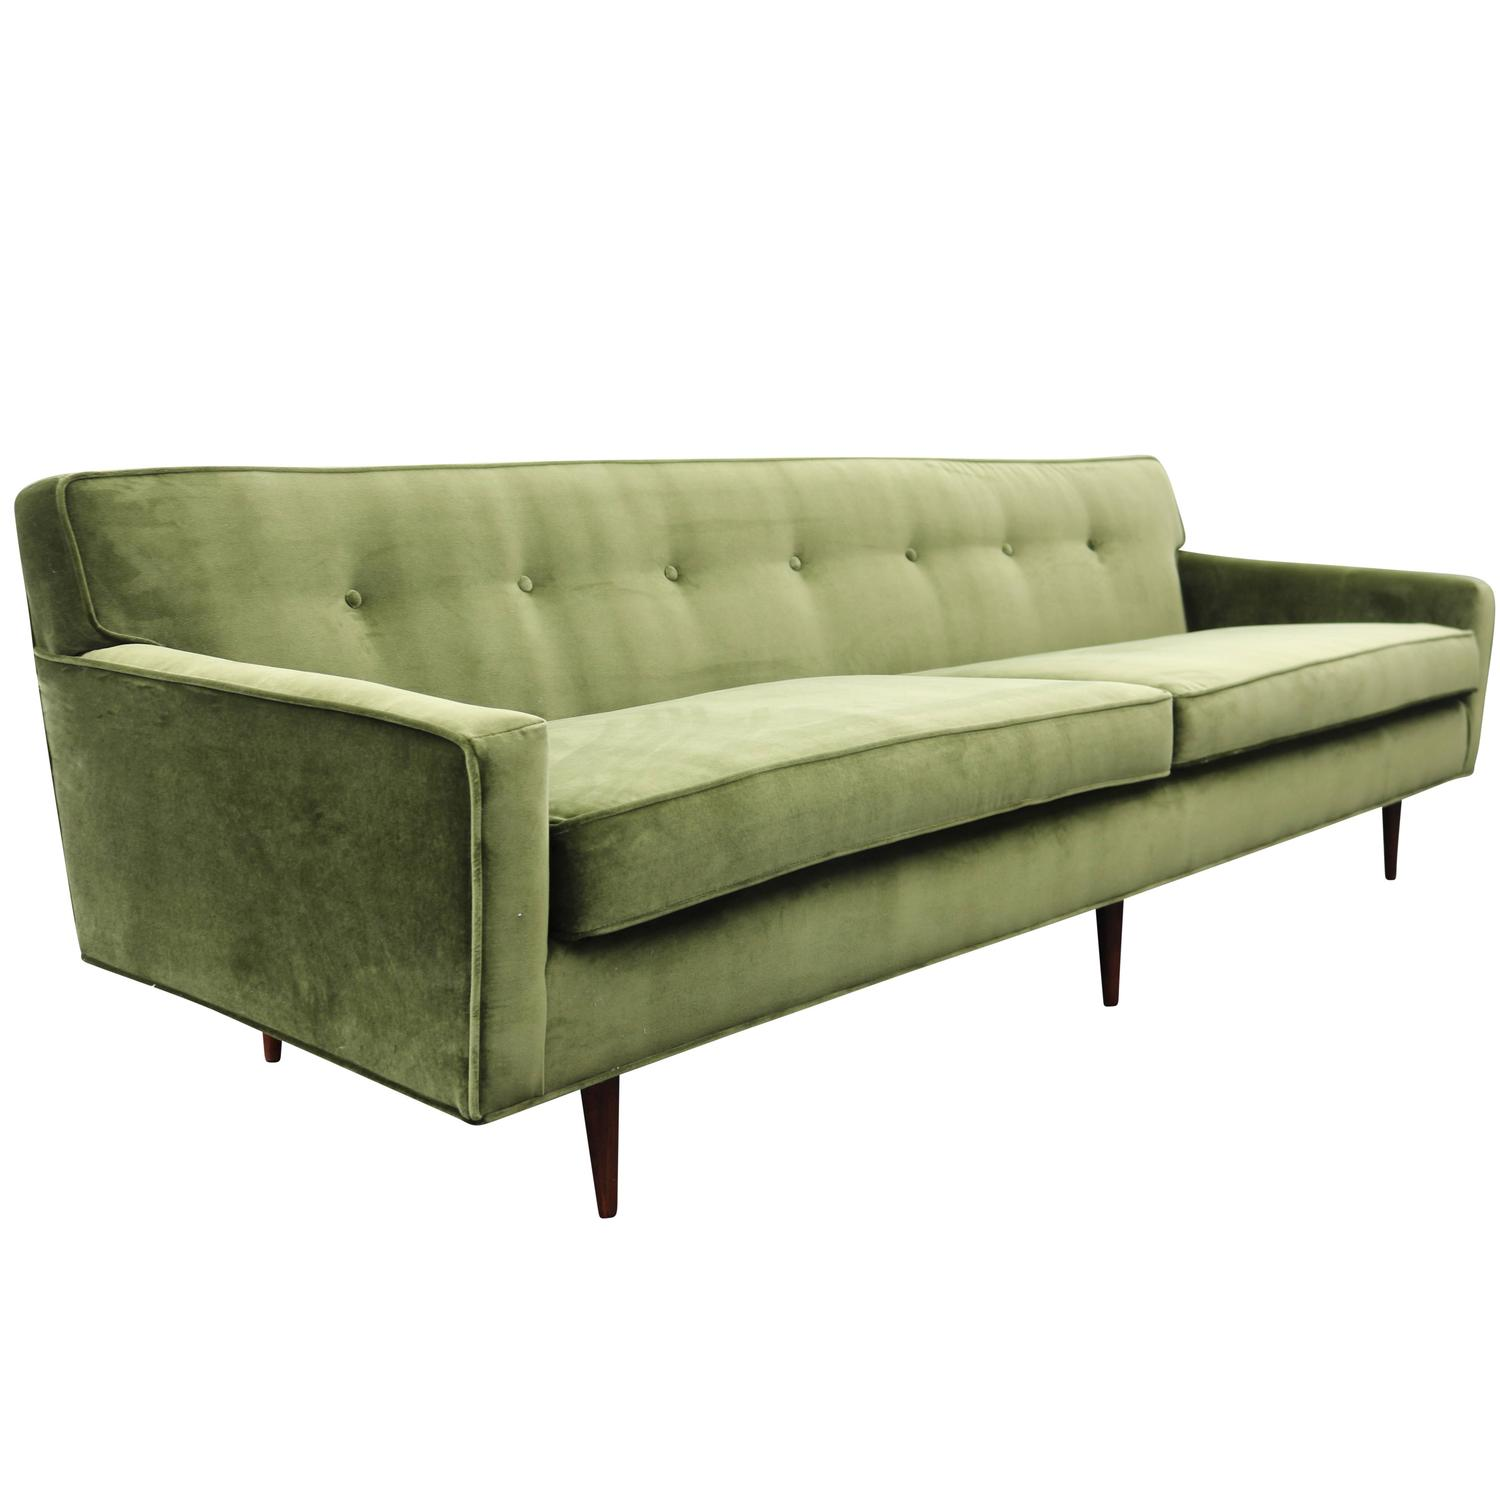 Gorgeous green velvet mid century modern sofa at 1stdibs for Modern contemporary sofa